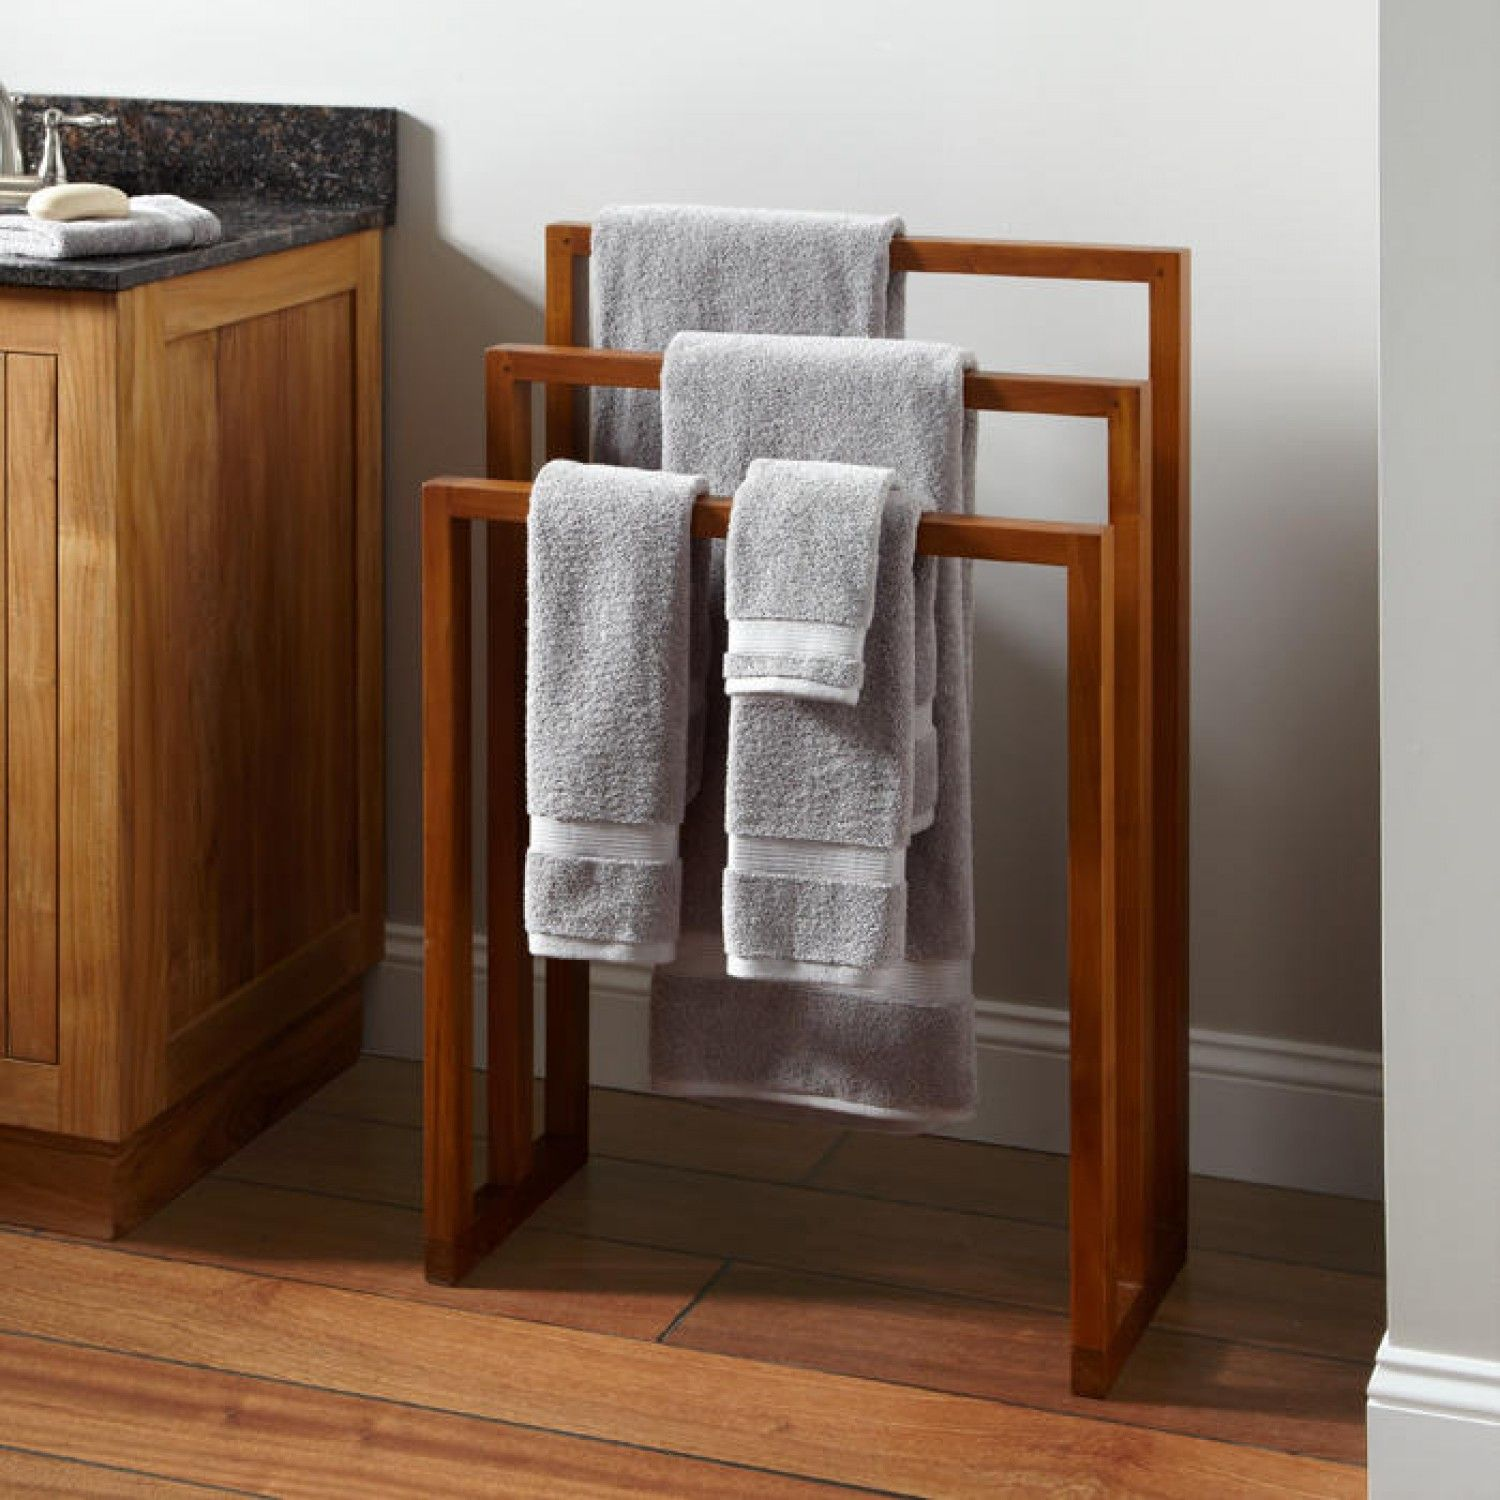 Hailey Teak Towel Rack Towel Racks Teak And Bathroom Towel Racks - Towel stands for bathrooms for bathroom decor ideas